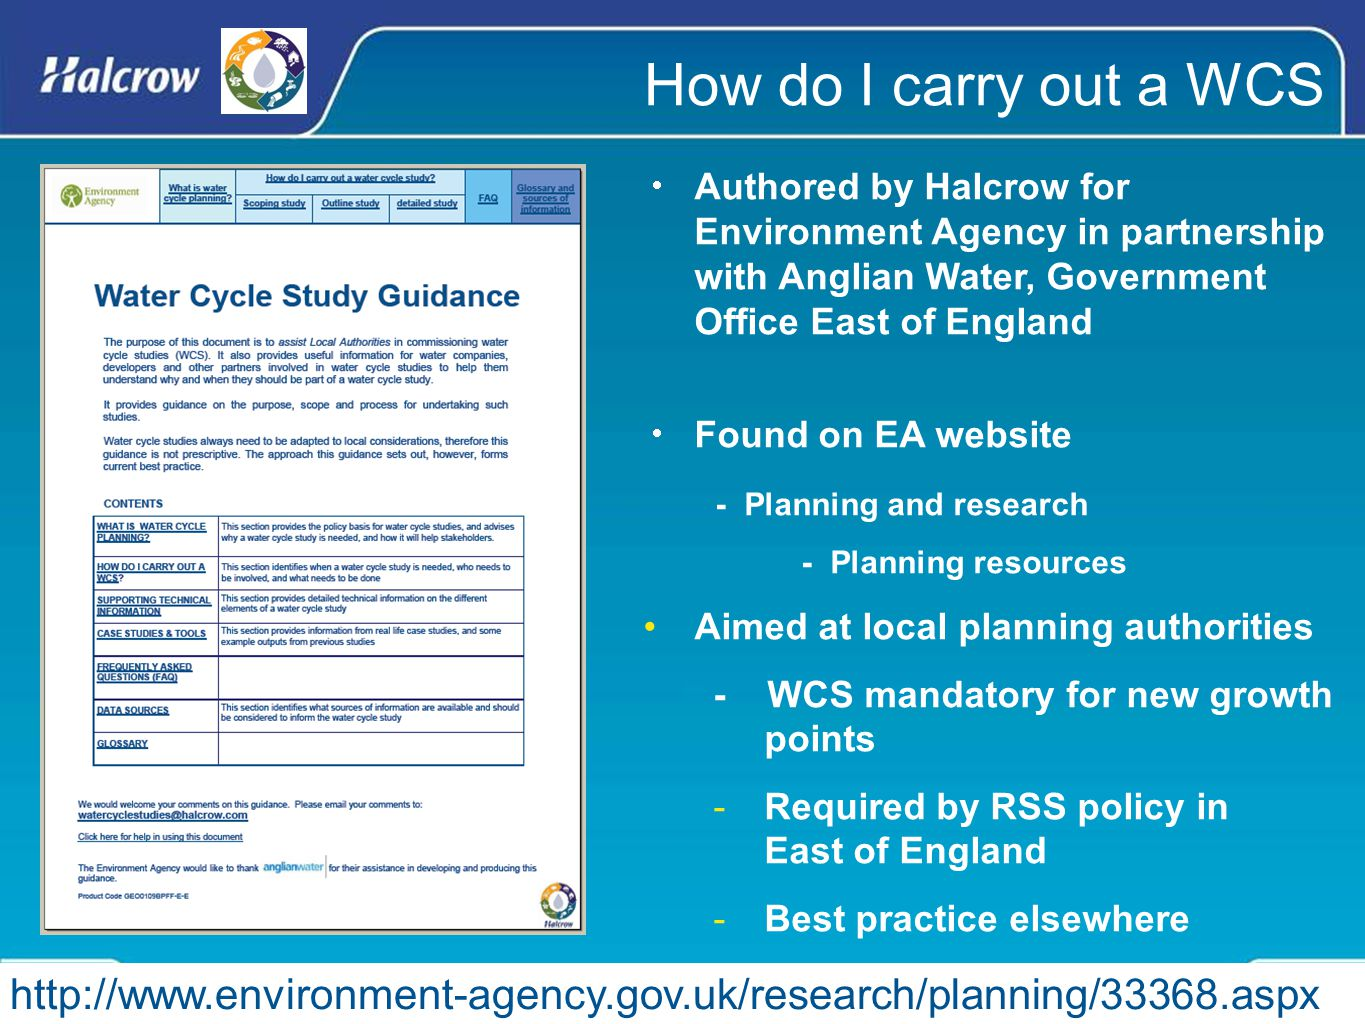 How do I carry out a WCS  Authored by Halcrow for Environment Agency in partnership with Anglian Water, Government Office East of England  Found on EA website - Planning and research - Planning resources Aimed at local planning authorities - WCS mandatory for new growth points -Required by RSS policy in East of England -Best practice elsewhere